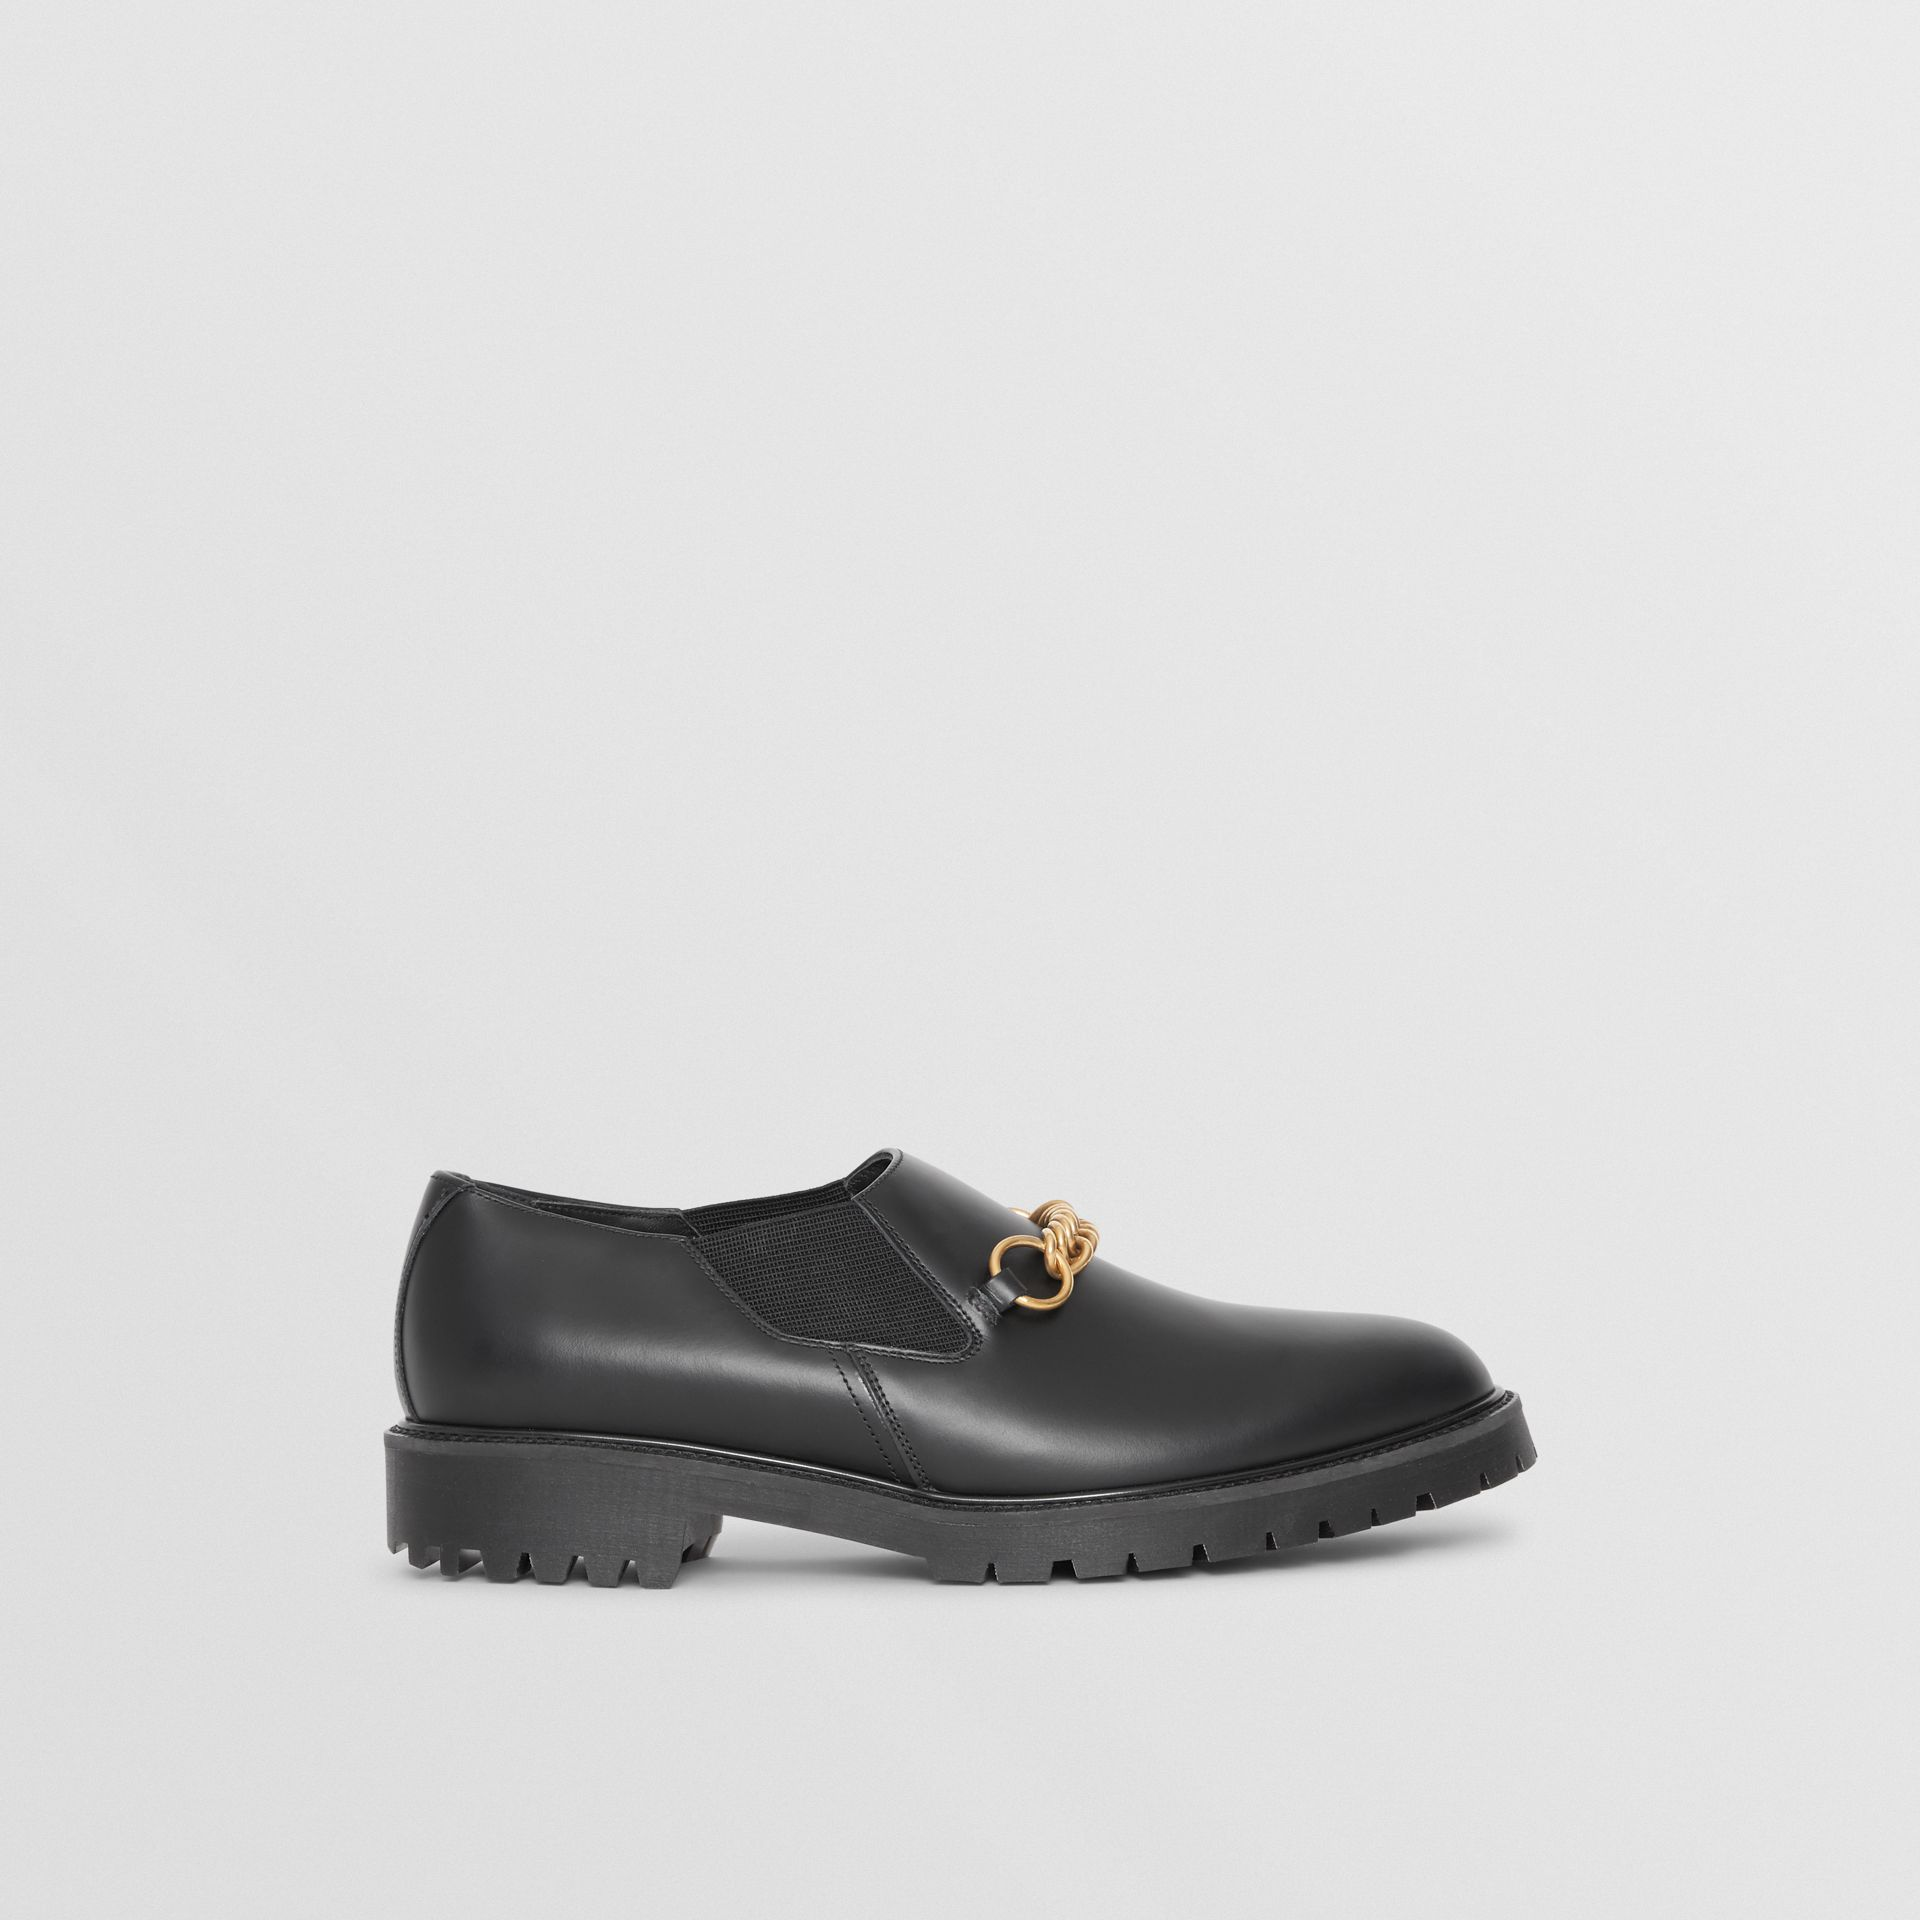 Link Detail Leather Shoe in Black - Men | Burberry United States - gallery image 5